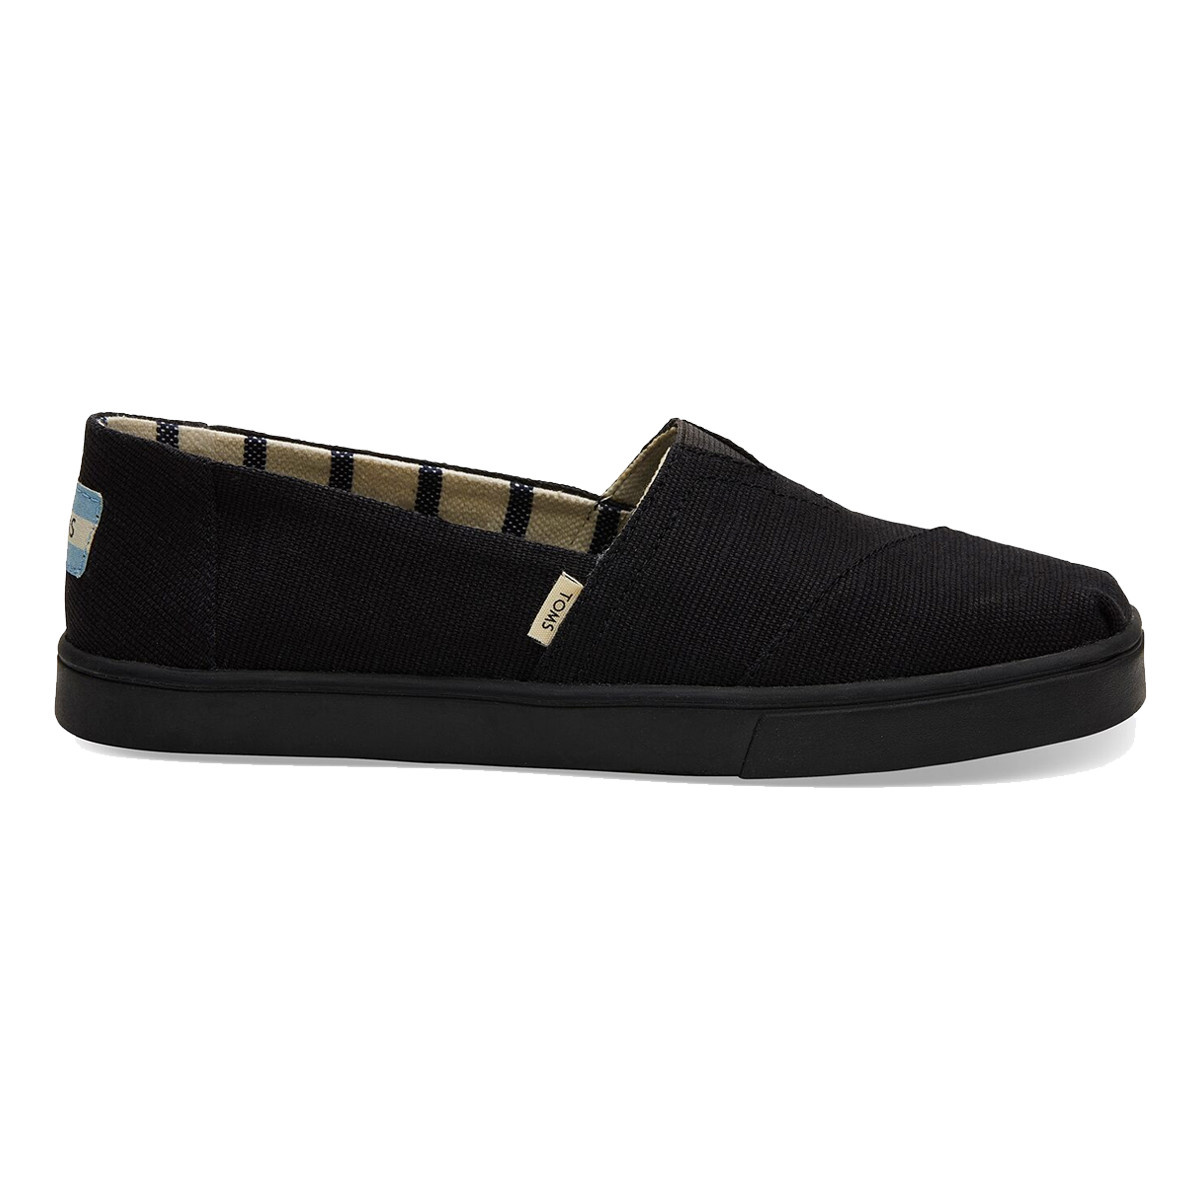 TOMS TOMS Women's Alpargata Boardwalk Black / Black